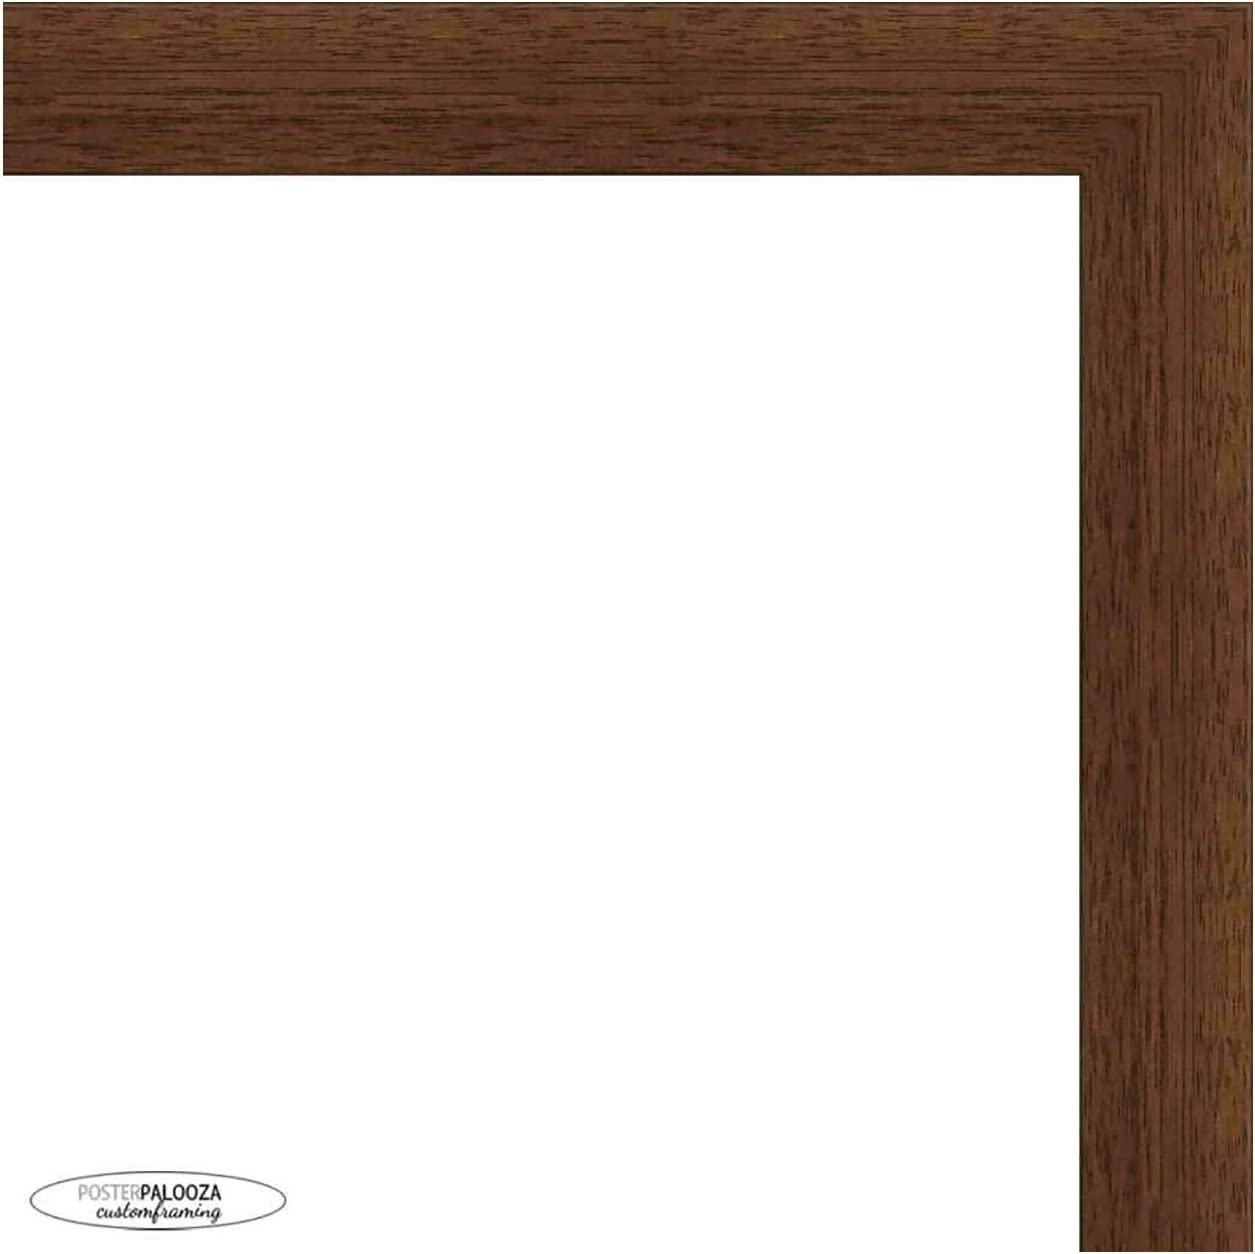 Super popular specialty store 40x13.5 Washington Mall Traditional Walnut Wood Picture Panoramic UV Frame - Acr